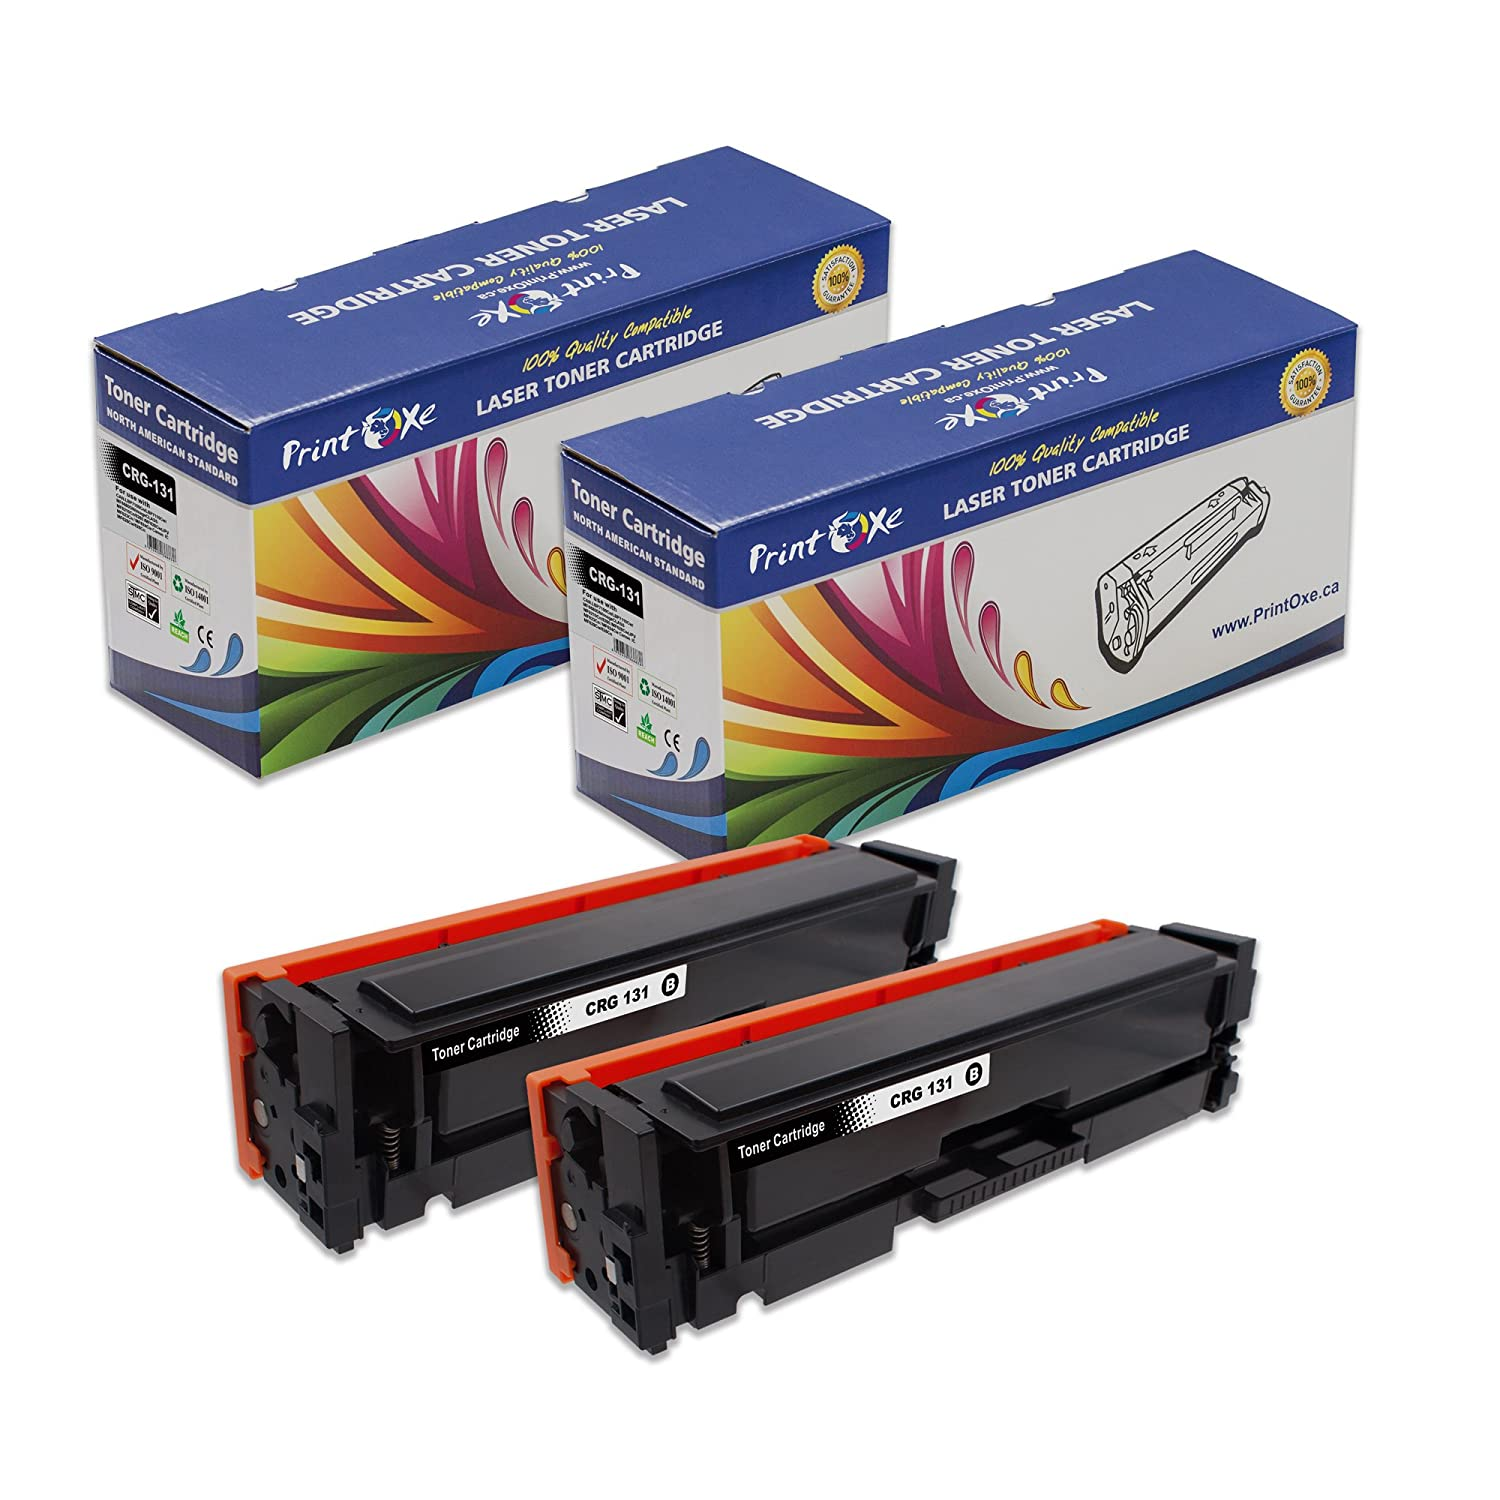 PrintOxe™ Compatible Set for CRG-131 of 4 Laser Toner Cartridges; Black, Cyan, Magenta & Yellow for Canon Printer Models: LBP7100Cn , LBP7110Cw , MF6680DN and ImageClass models MF8210Cn , 8280 , MF628Cw(JP) , MF623Cn , MF624Cw and IC MF628Cw , 626Cn